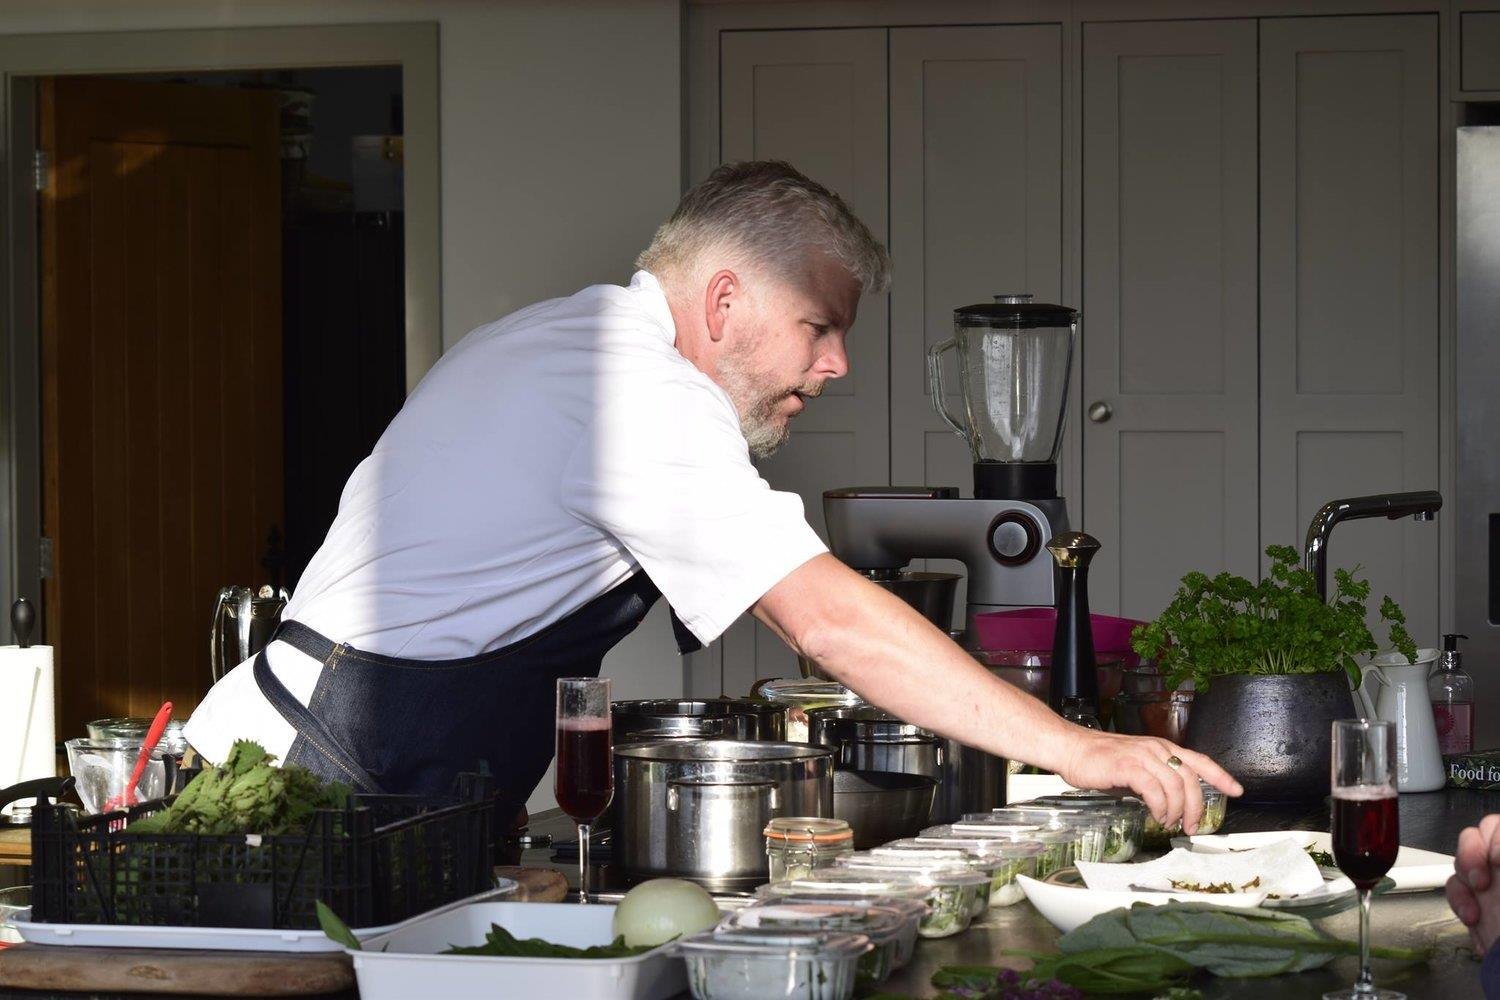 Chef's Profile - Daren Bale